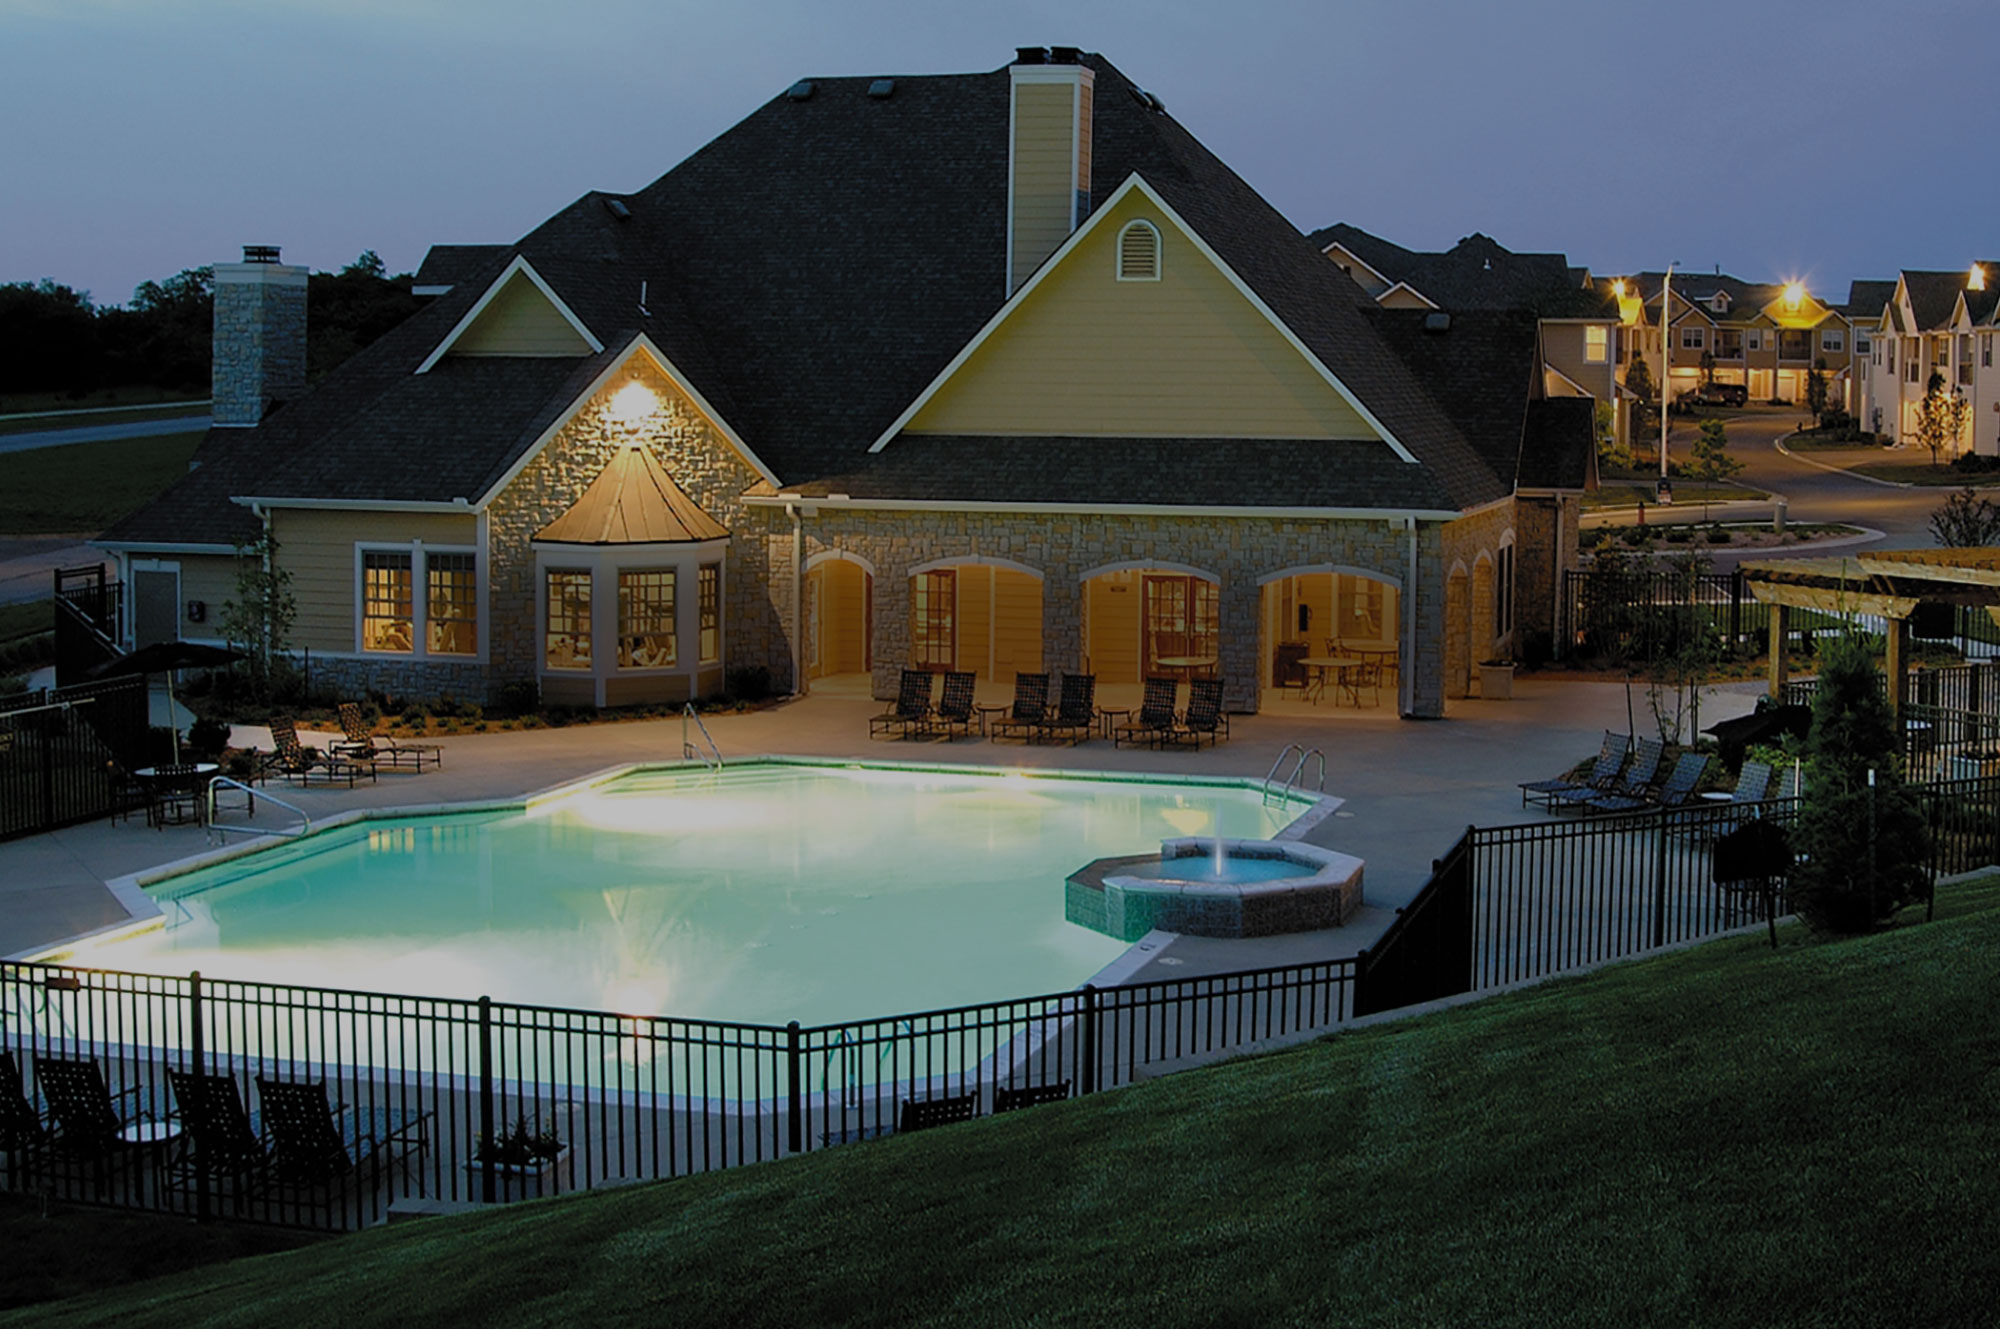 Peachy The Manor Homes Of Fox Crest Apartments In Kansas City Mo Interior Design Ideas Clesiryabchikinfo